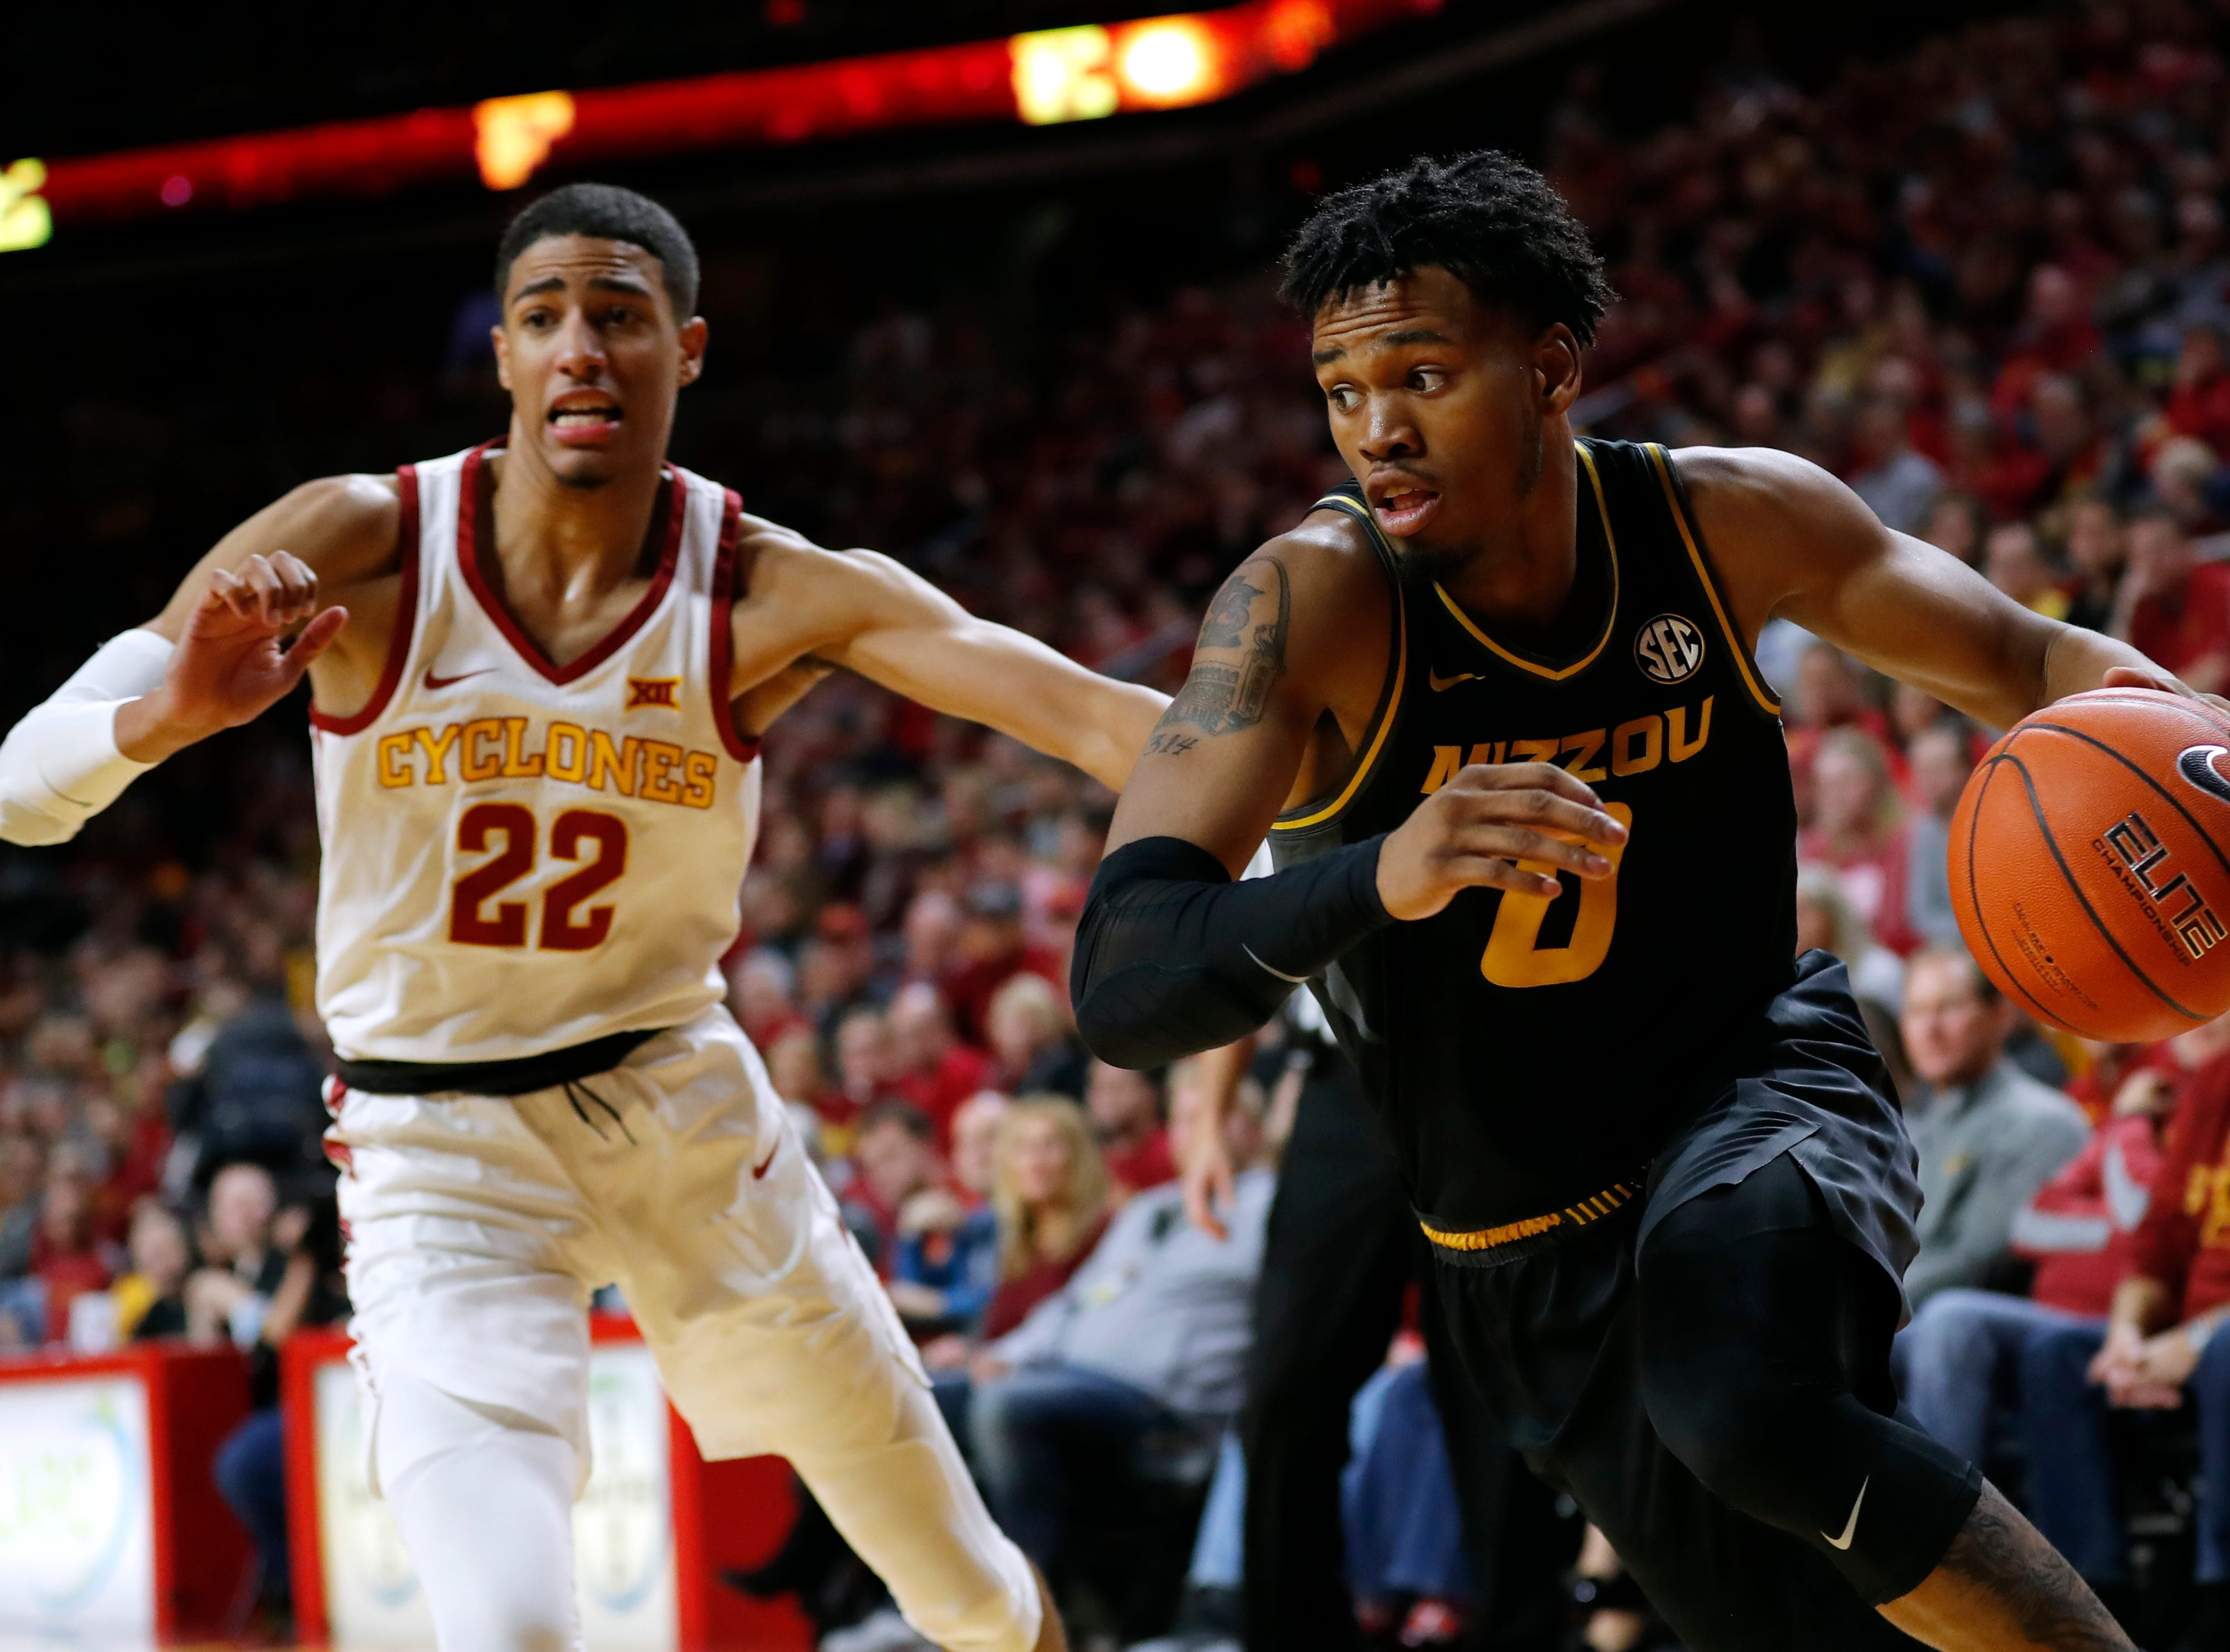 Missouri guard Torrence Watson drives to the basket past Iowa State guard Tyrese Haliburton (22) during the second half of an NCAA college basketball game, Friday, Nov. 9, 2018, in Ames, Iowa.